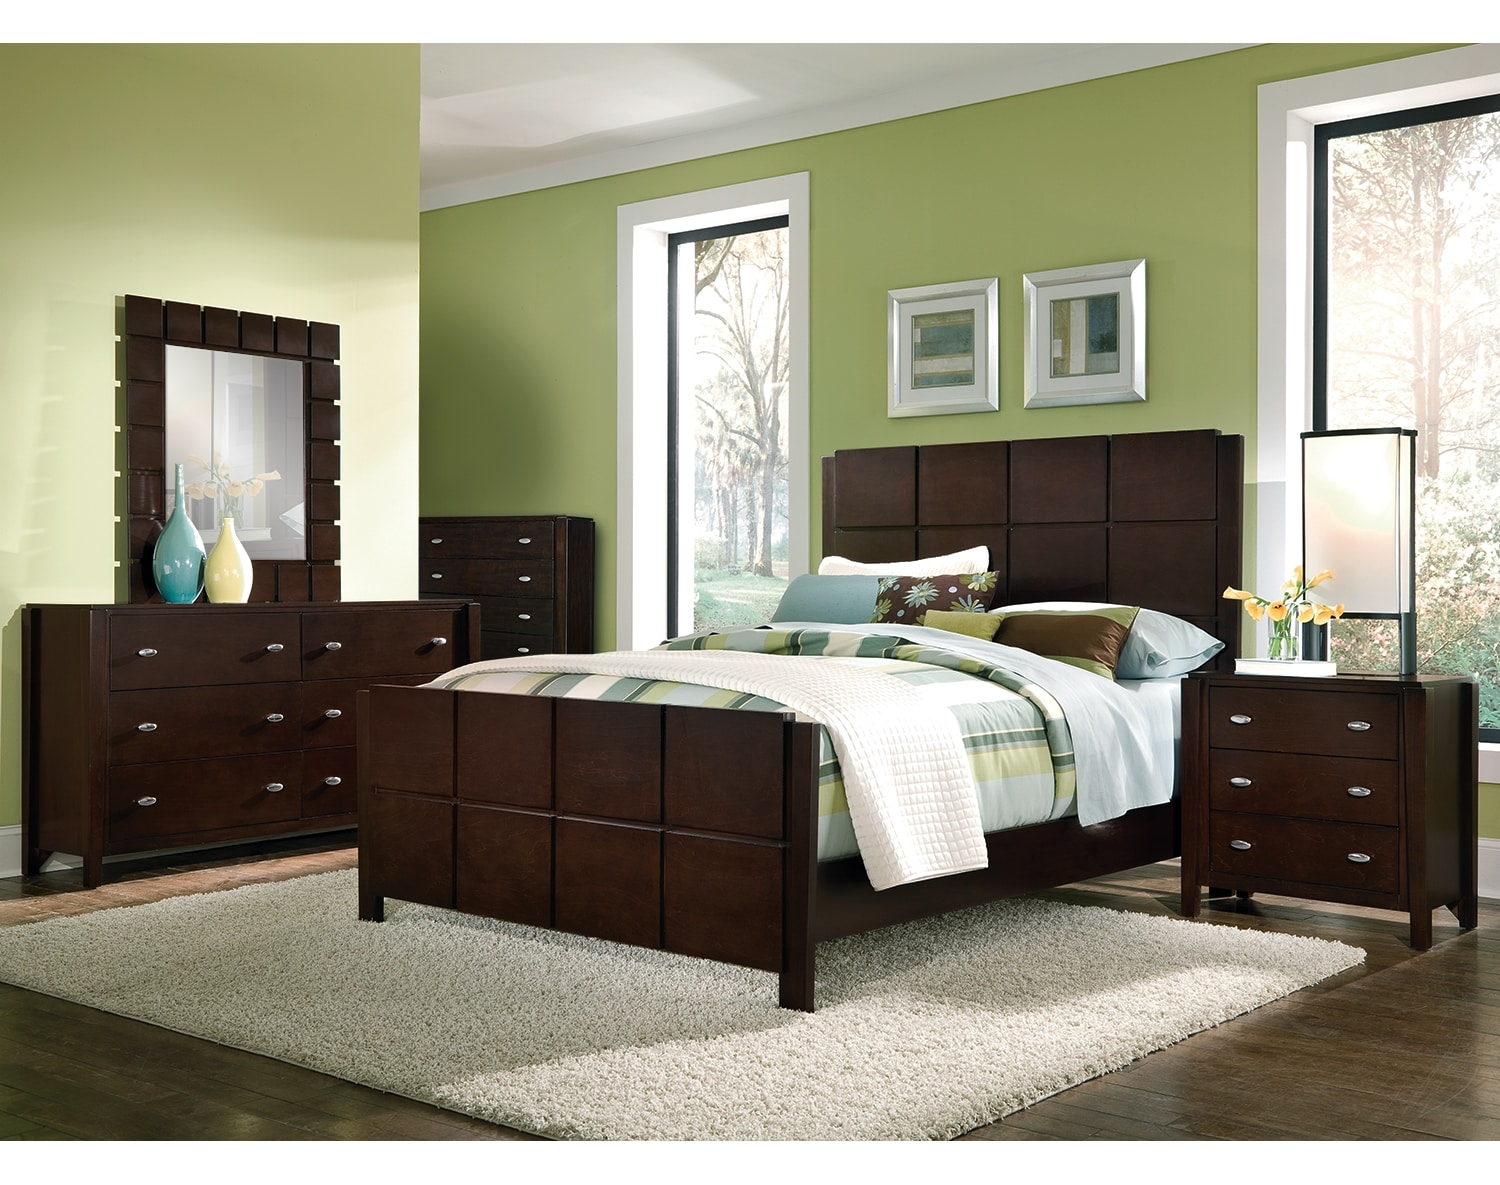 The Mosaic Collection Dark Brown Value City Furniture and